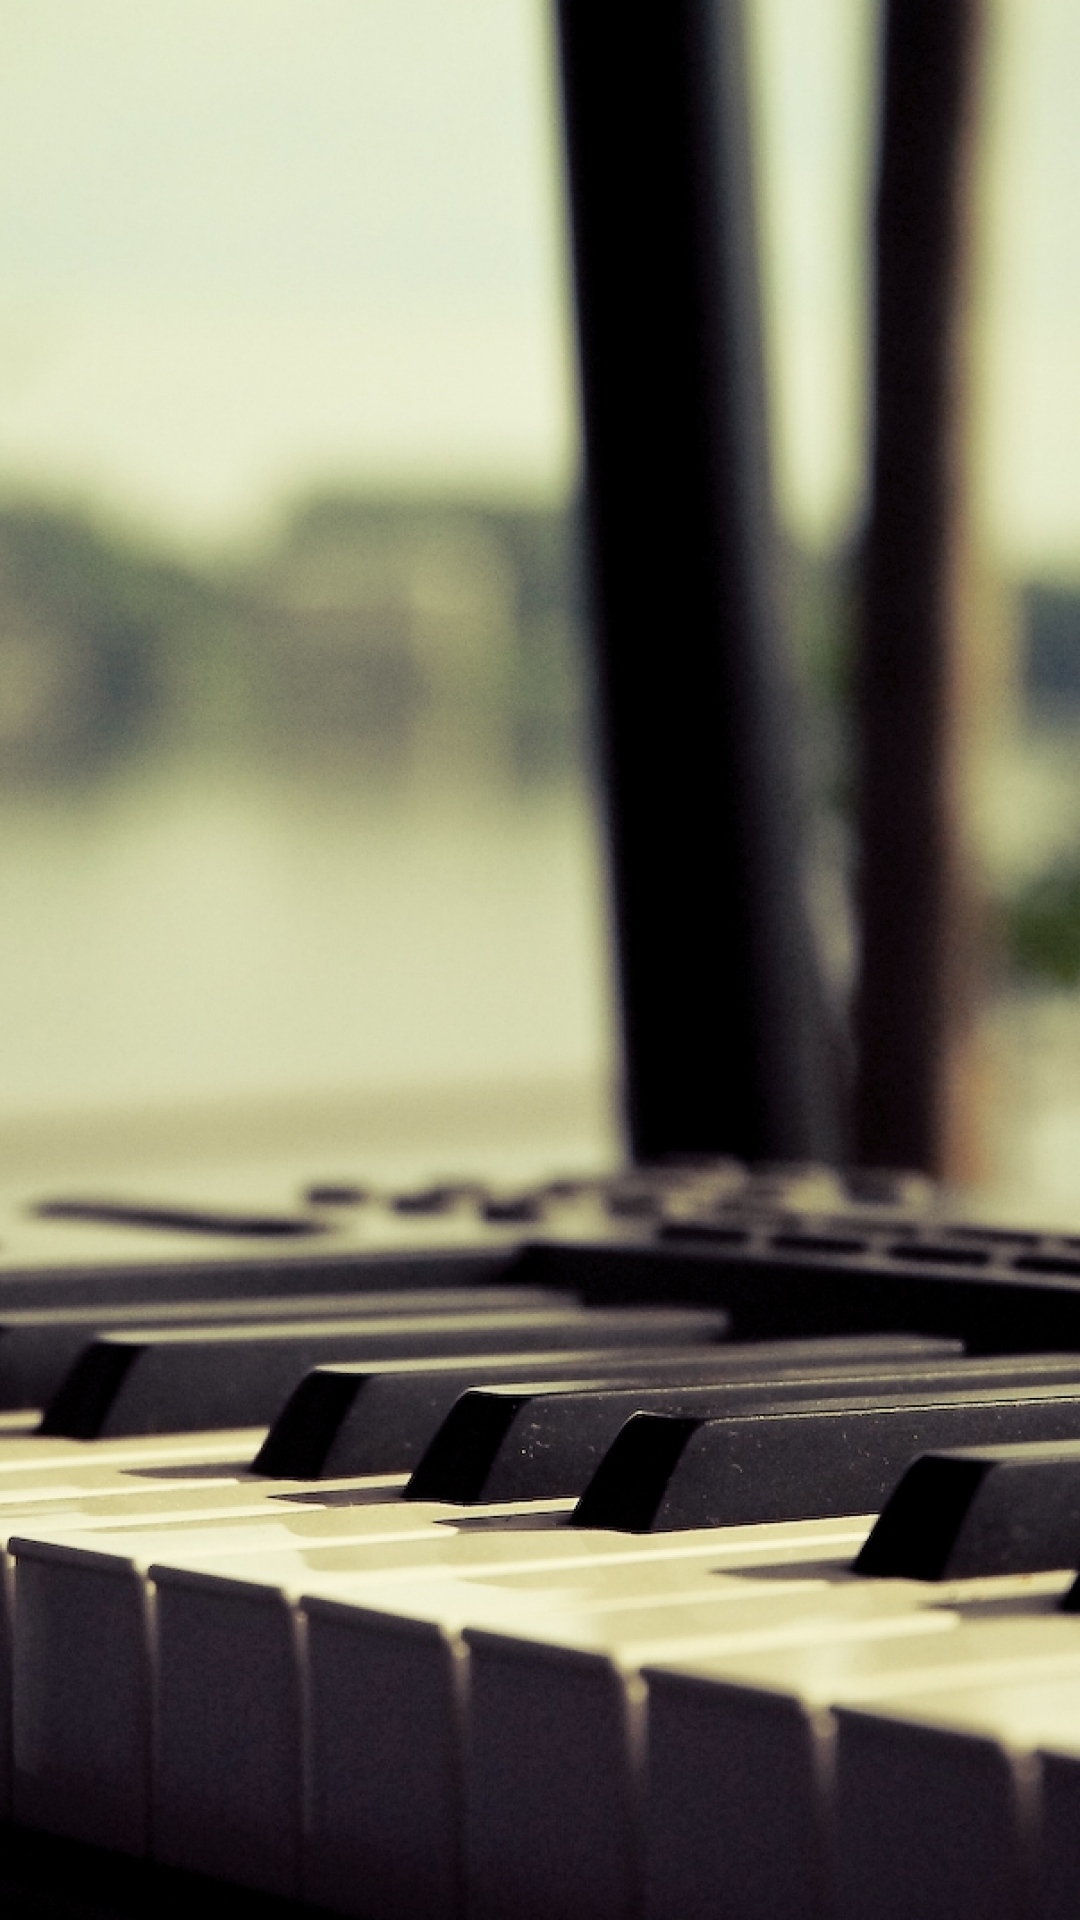 Music Keyboard Wallpaper